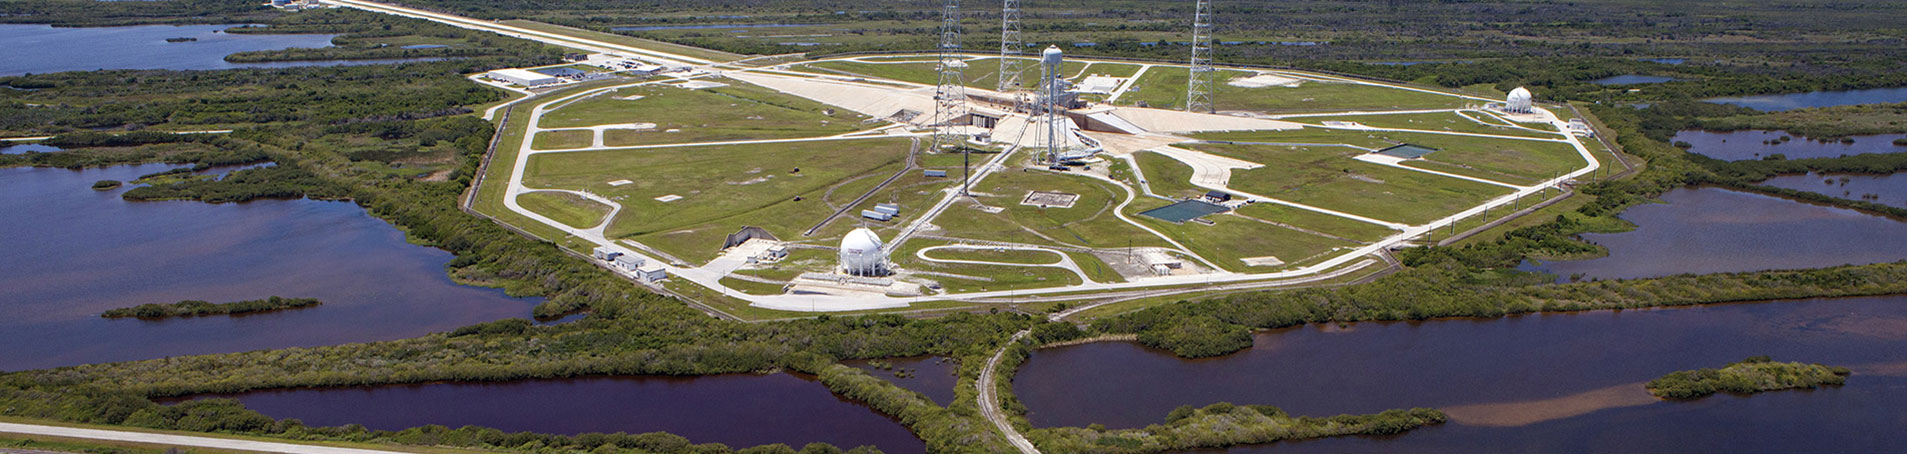 Aerial of launch complex at Kennedy Space Center